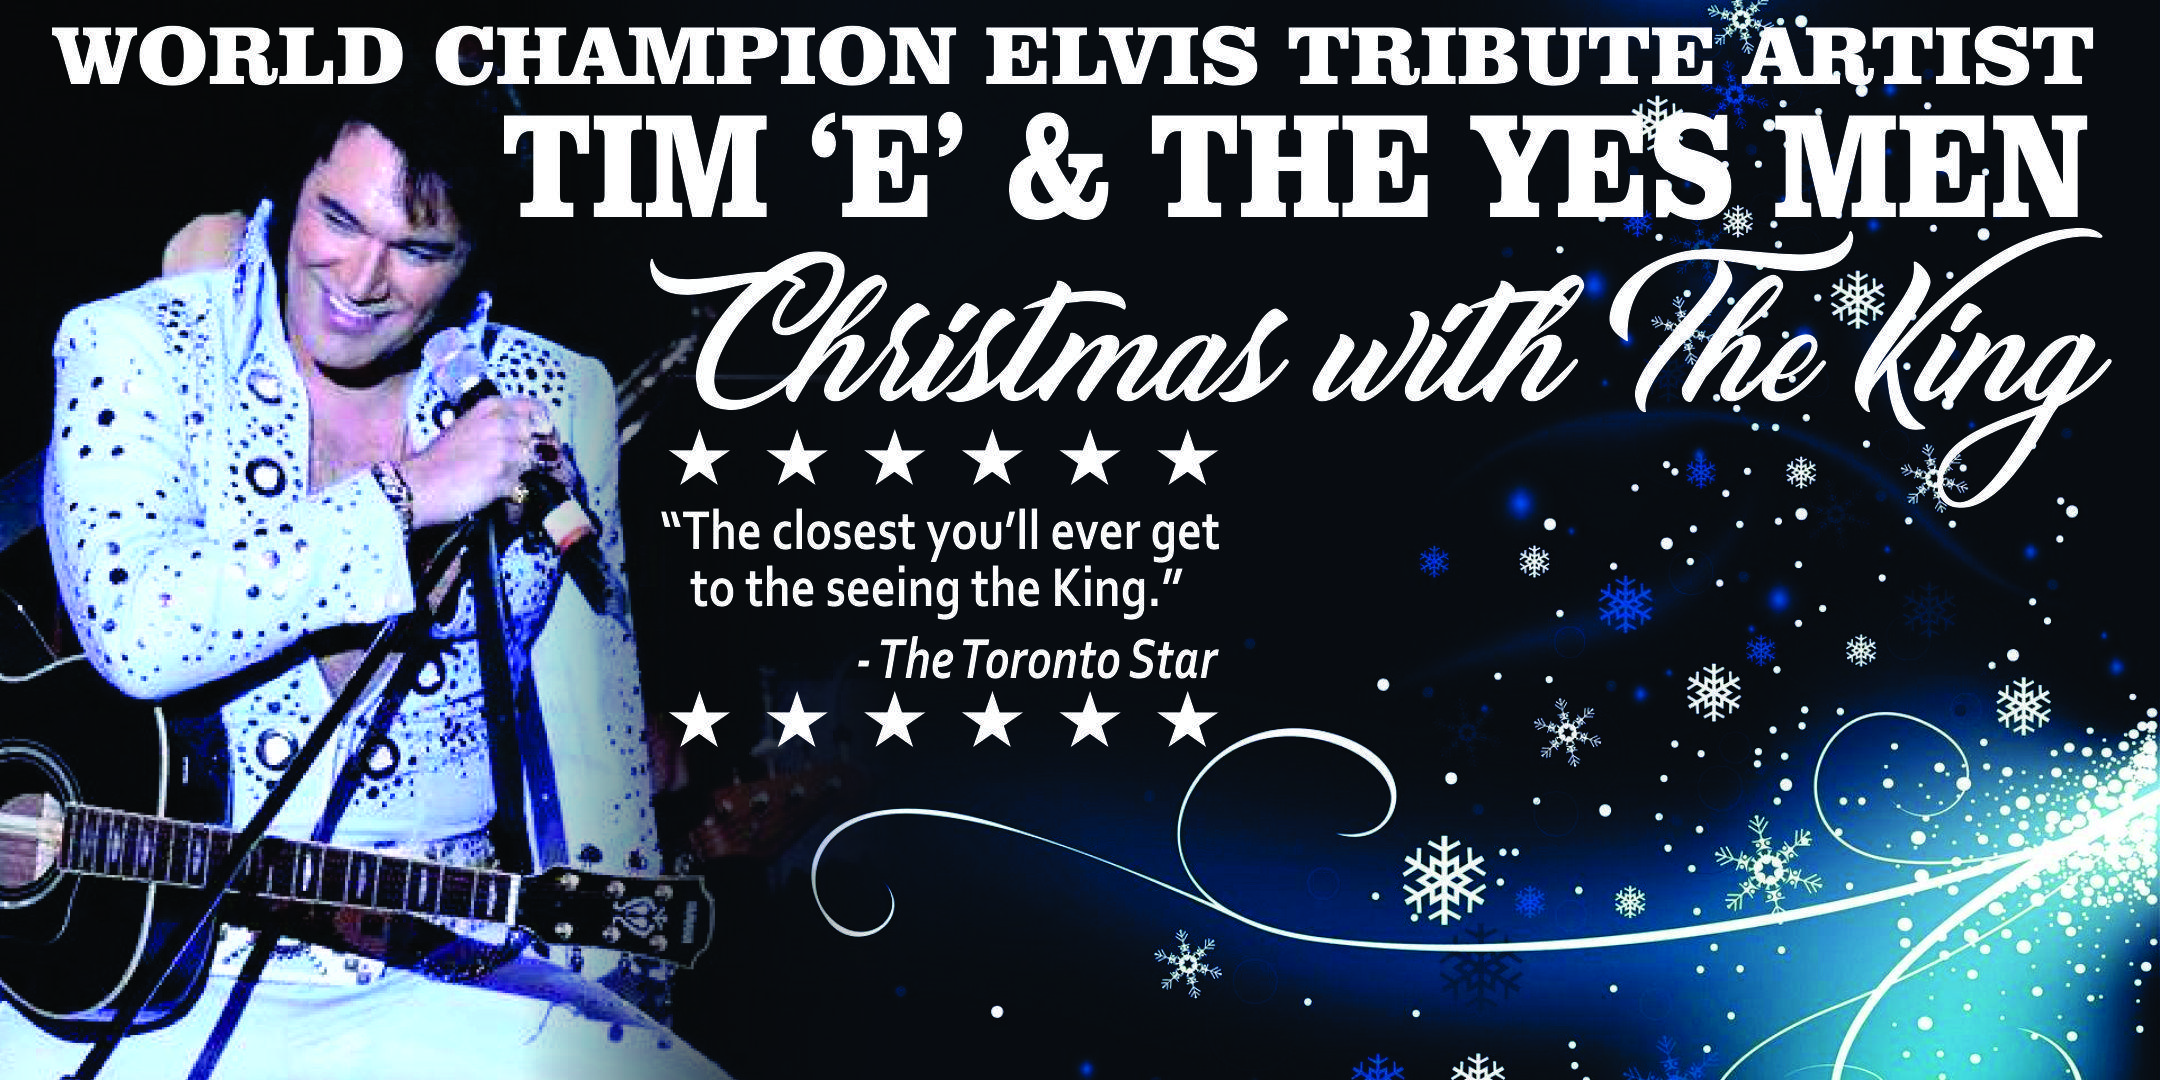 Christmas With World Champion Elvis Tribute Artist Tim 'e' and the Yes Men | Windsor, ON | Olde Walkerville Theatre | December 9, 2017